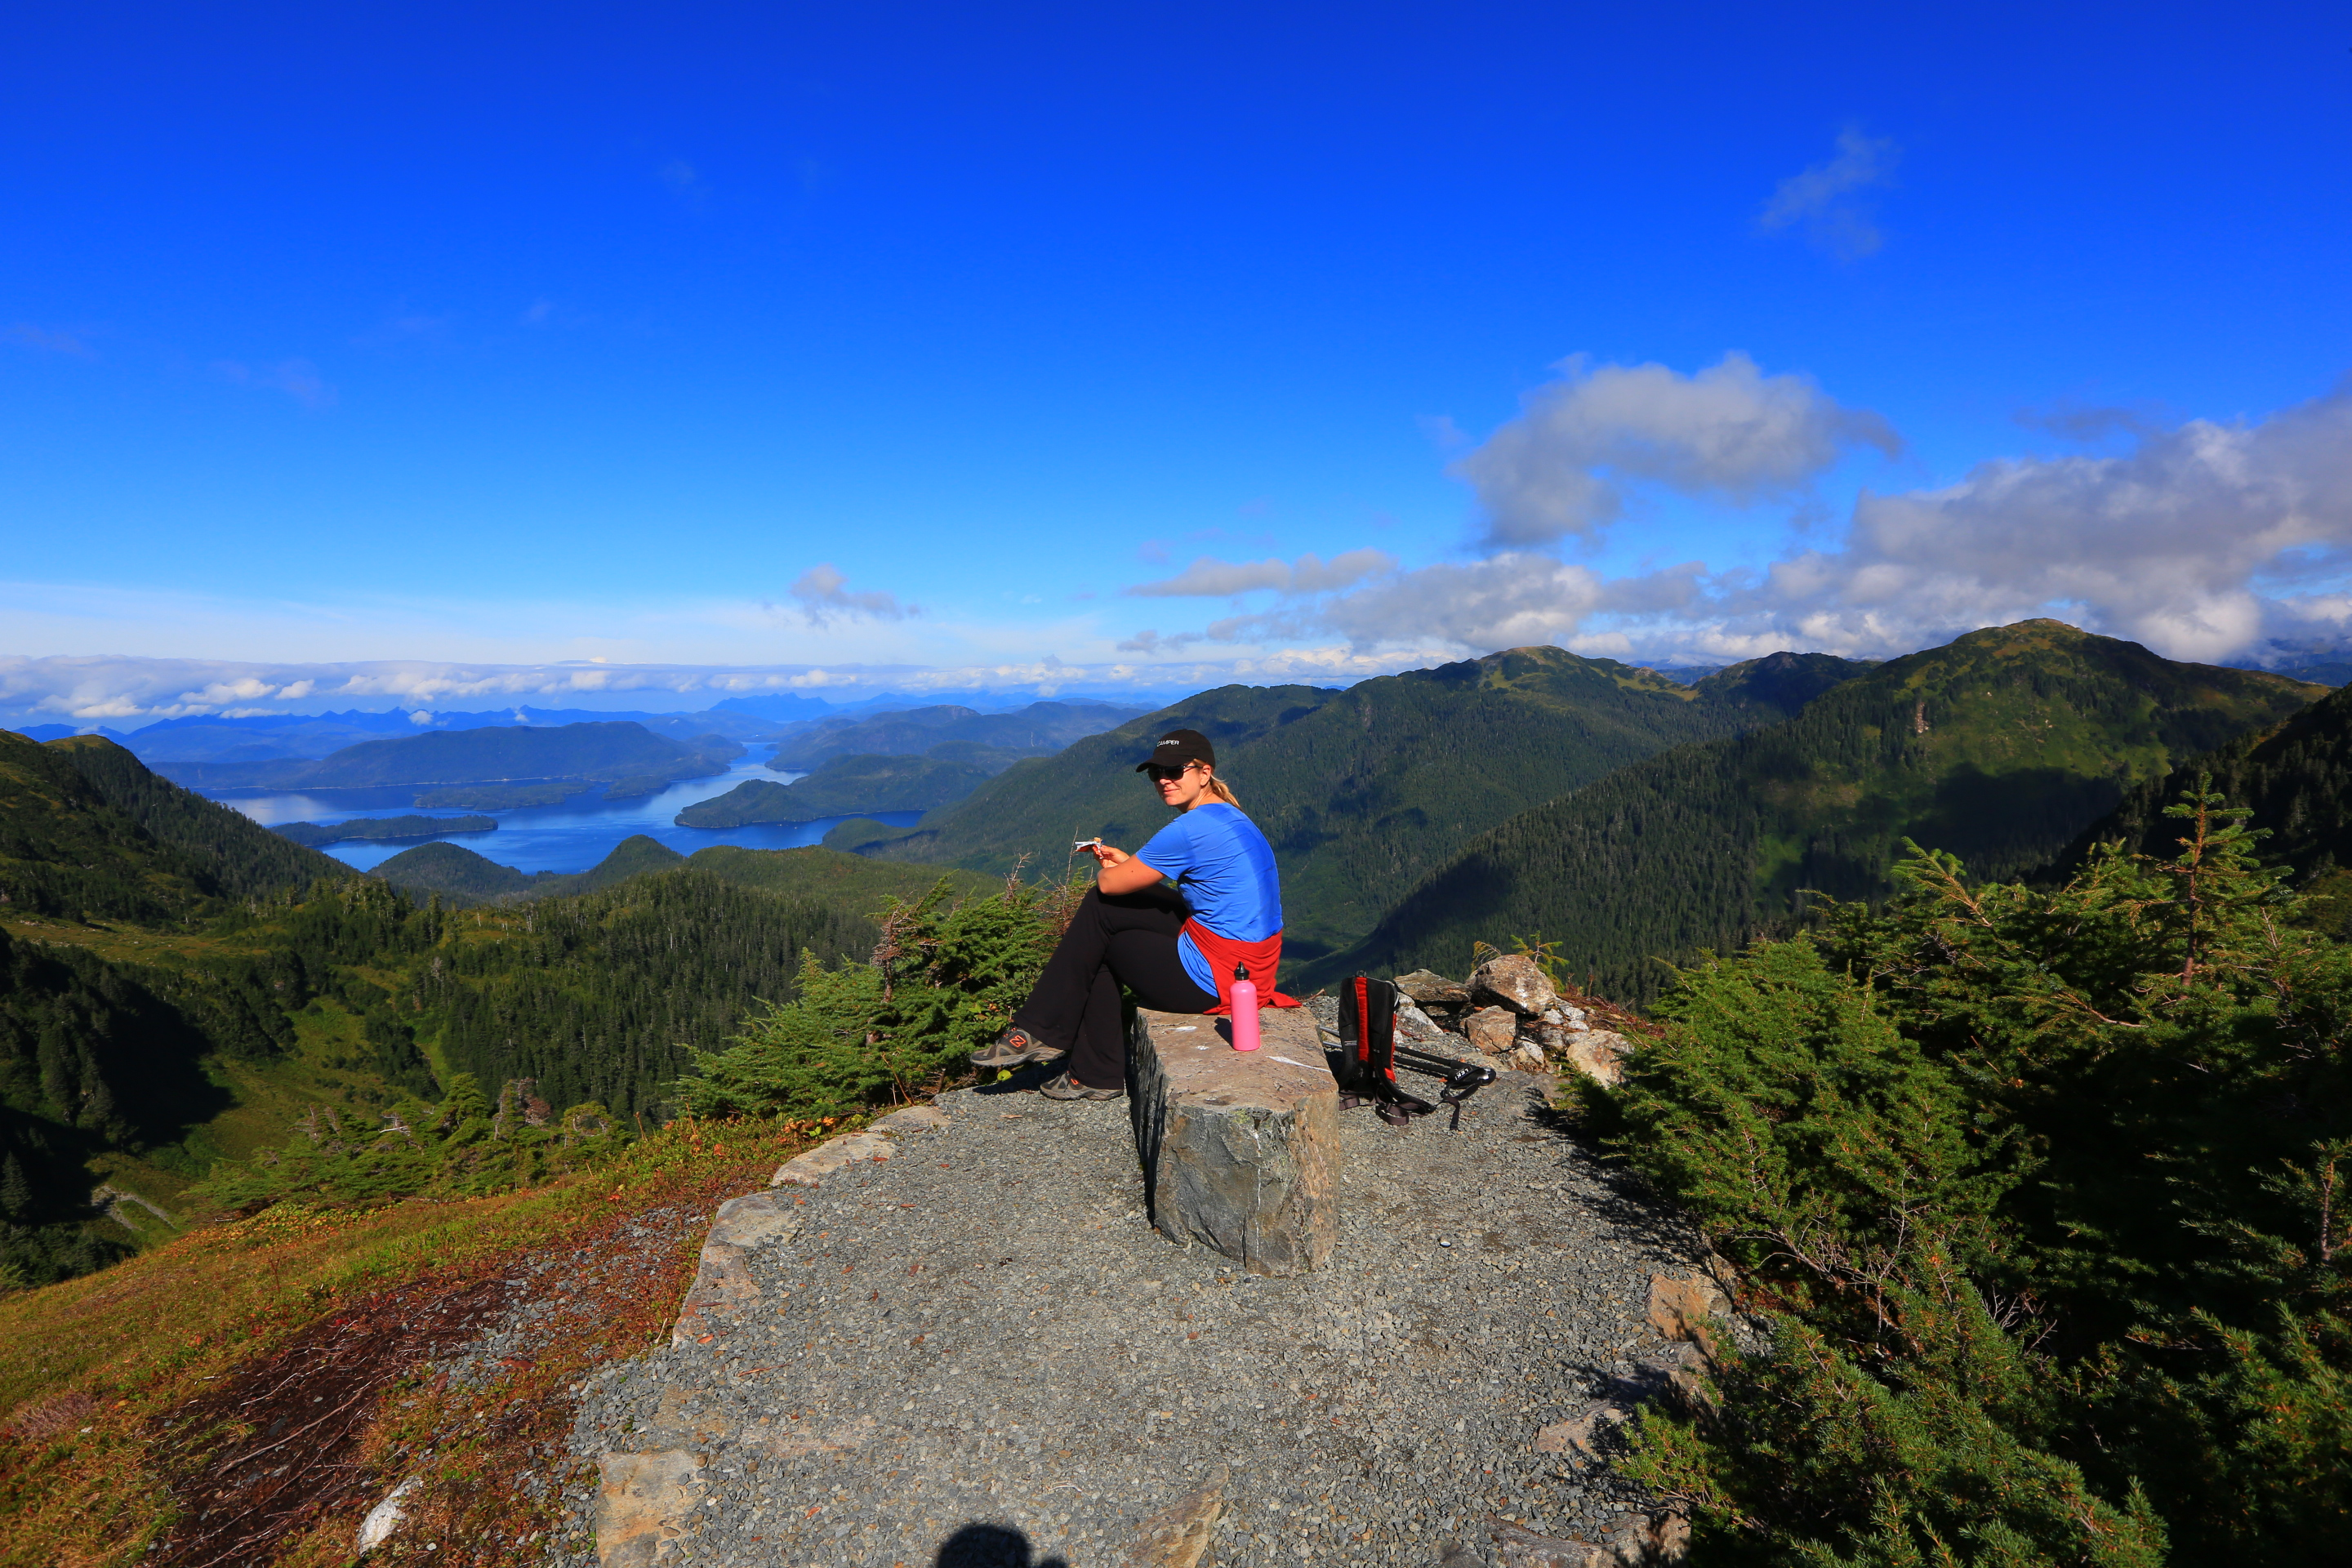 Top 5: Best Hikes in USA/Canada - Song of the Road